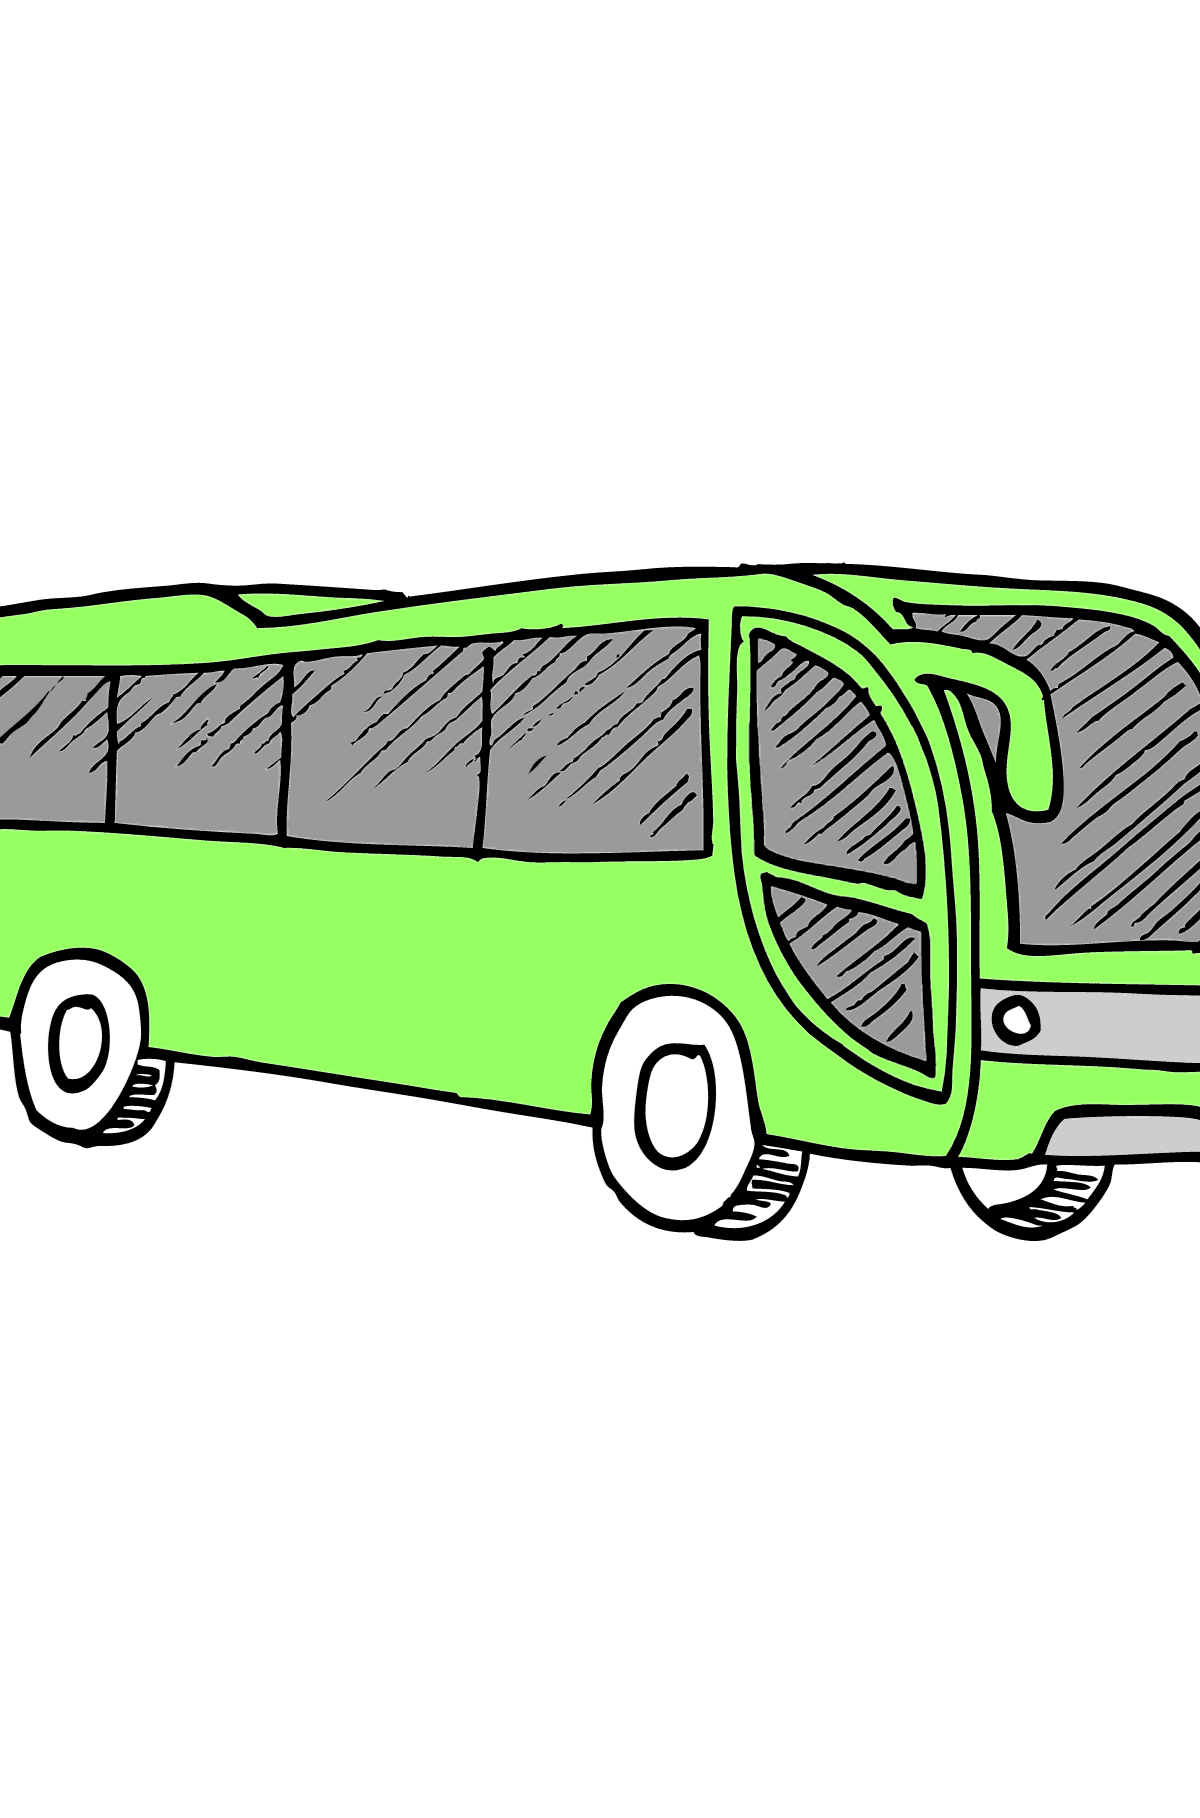 Coloring Pages with City Transport